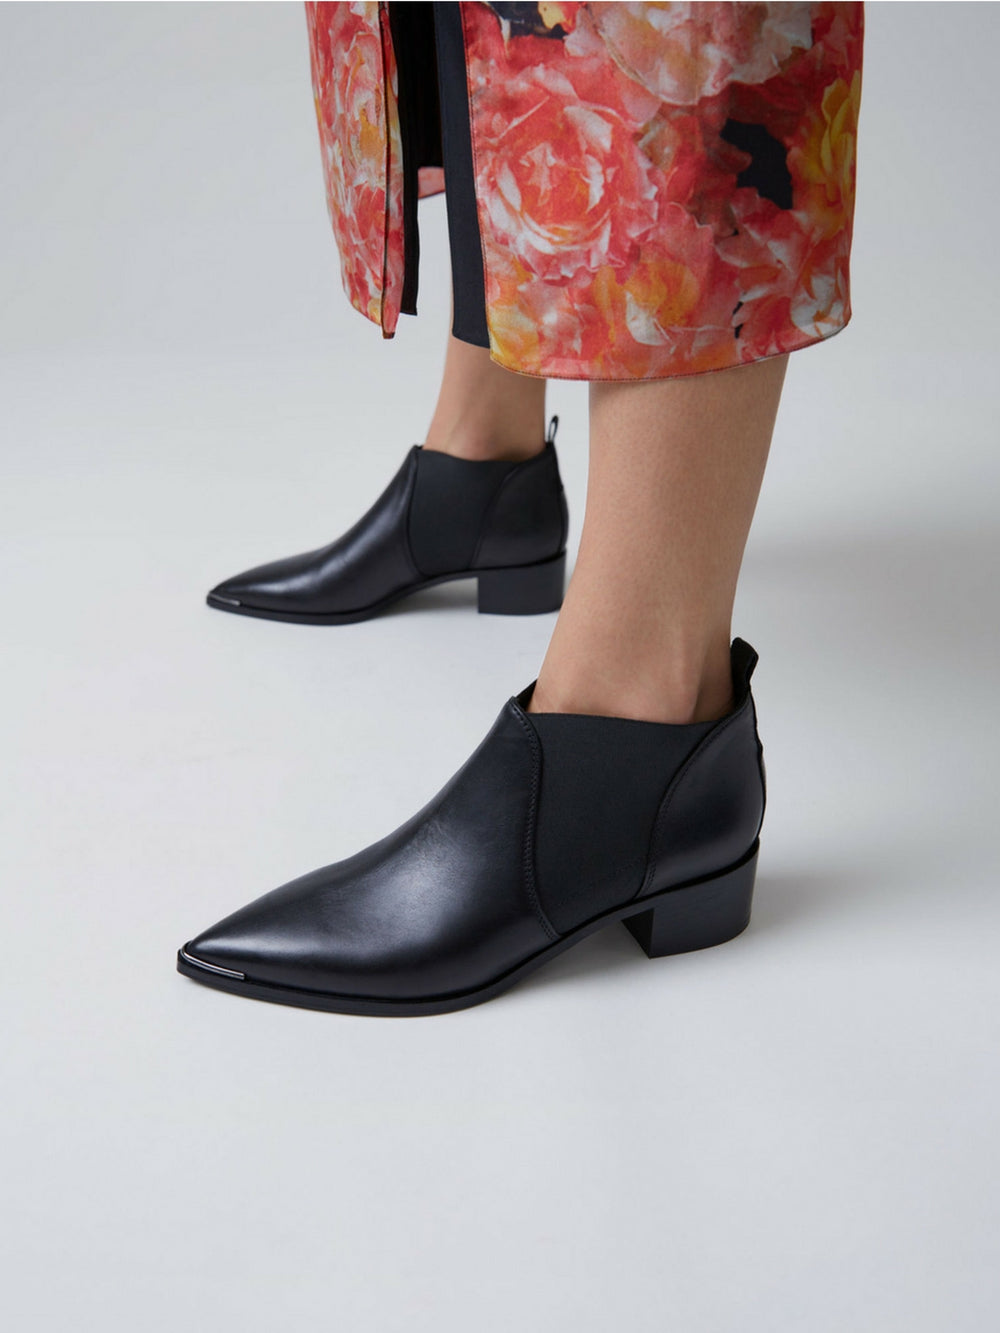 Acne Studios Jenny Leather Ankle Boots